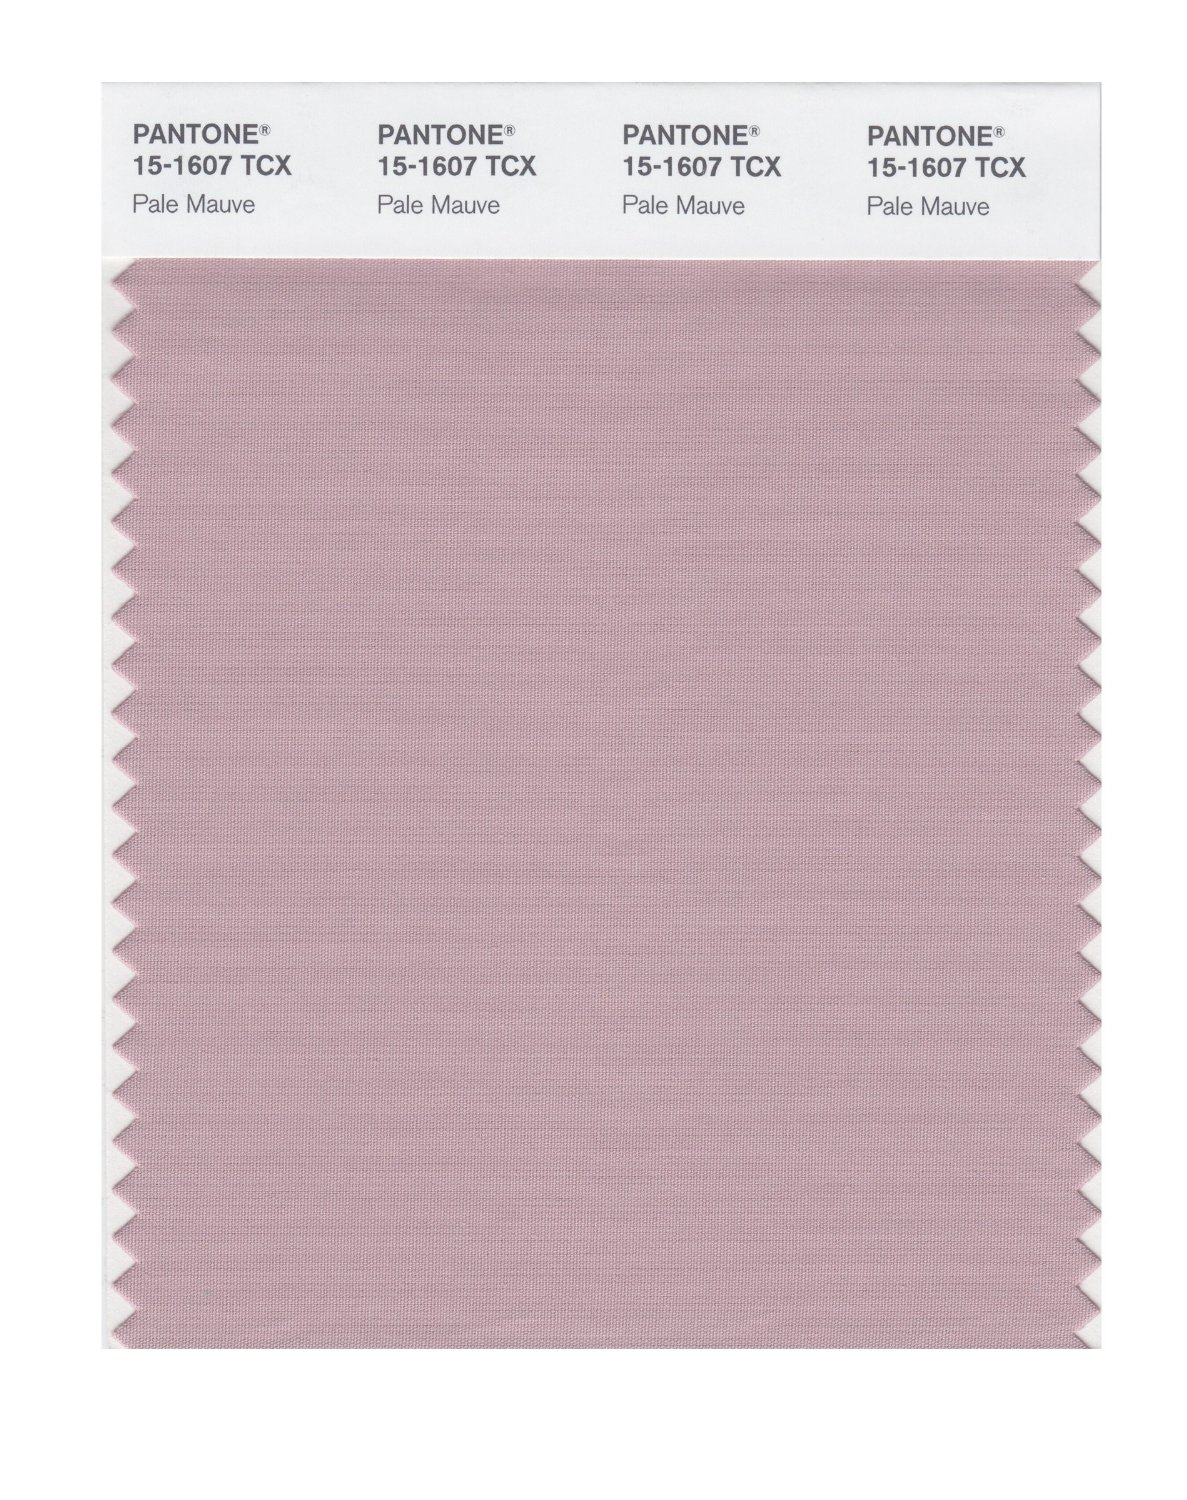 Pantone Smart Swatch 15-1607 Pale Mauve